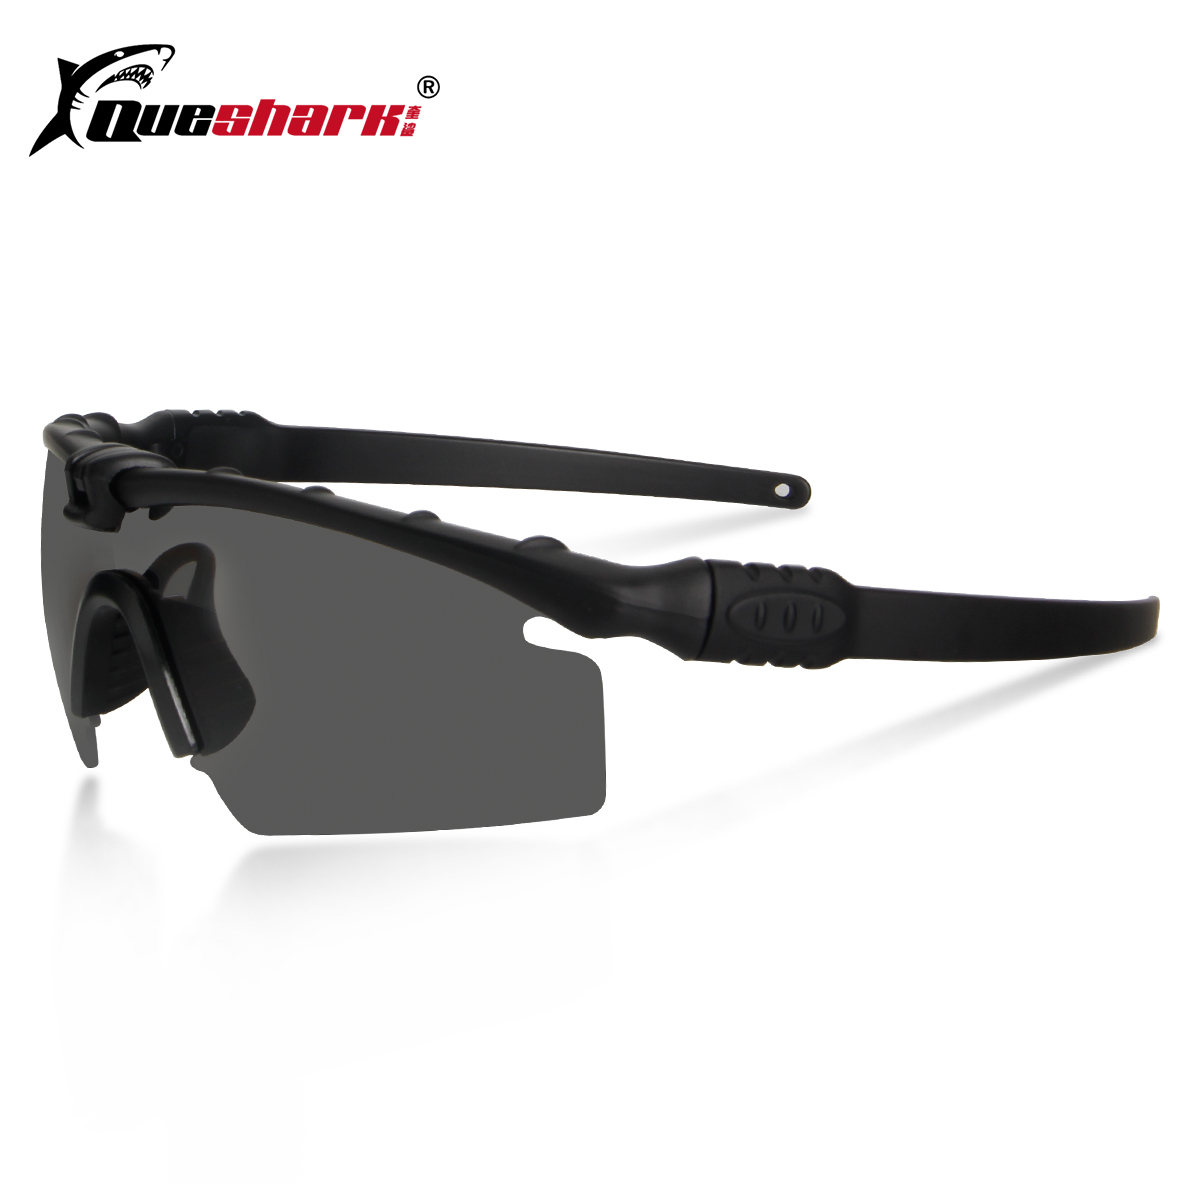 Queshark Army BALLISTIC 3.0 Protection Military Glasses Paintball Shooting Goggles Tactical Polarized Sunglasses Myopia FrameQueshark Army BALLISTIC 3.0 Protection Military Glasses Paintball Shooting Goggles Tactical Polarized Sunglasses Myopia Frame